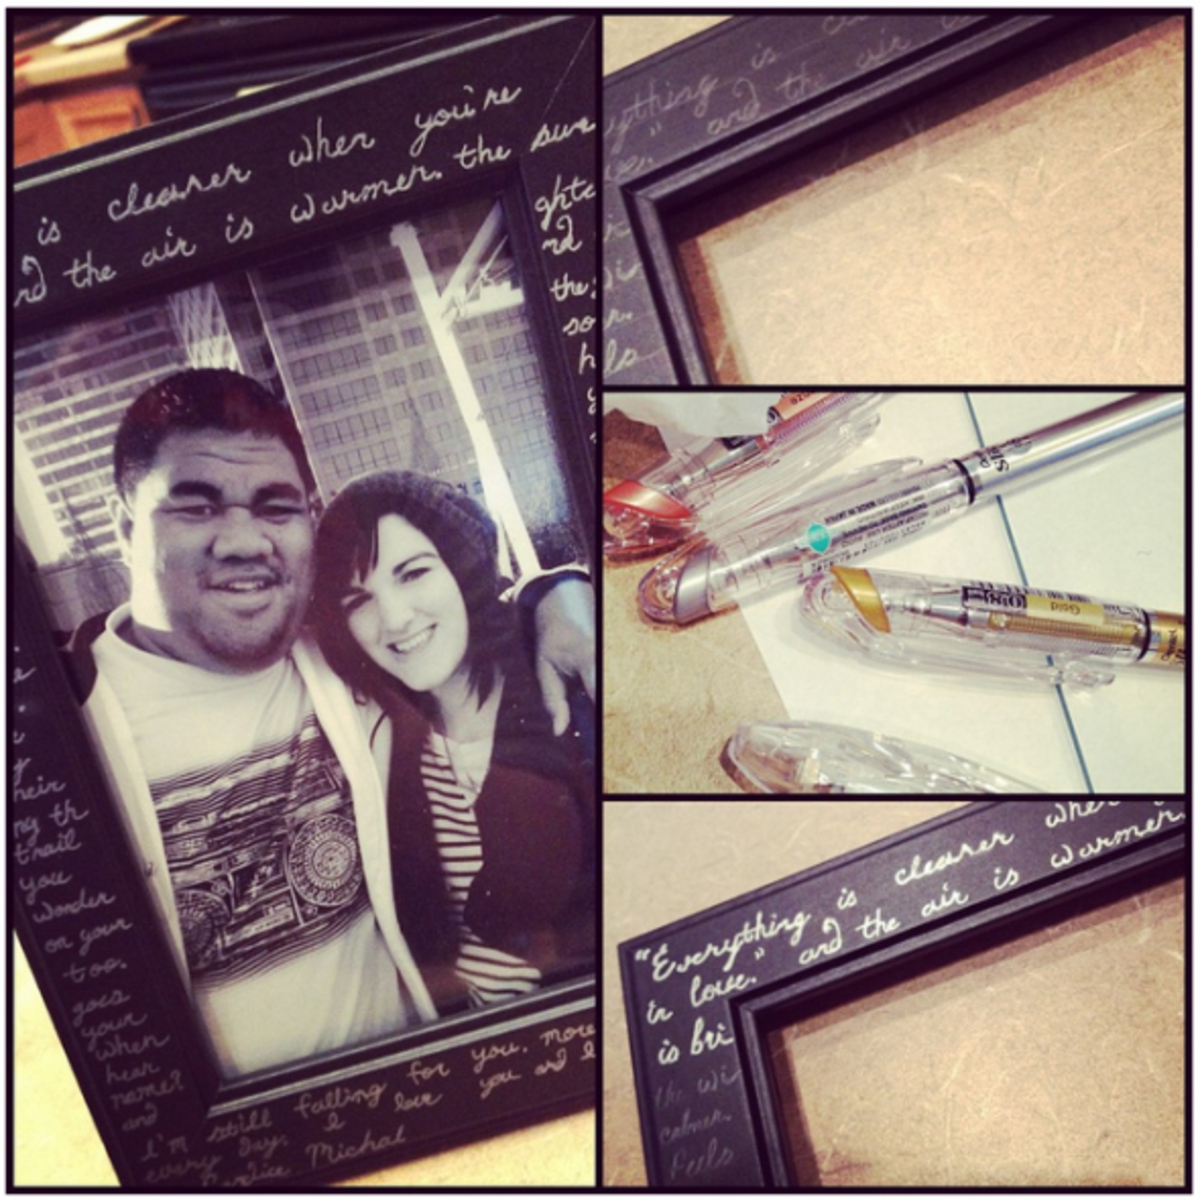 Simple and thoughtful way to embellish a plain frame; by adding a message, poetry, quotes or song lyrics in metallic pen.